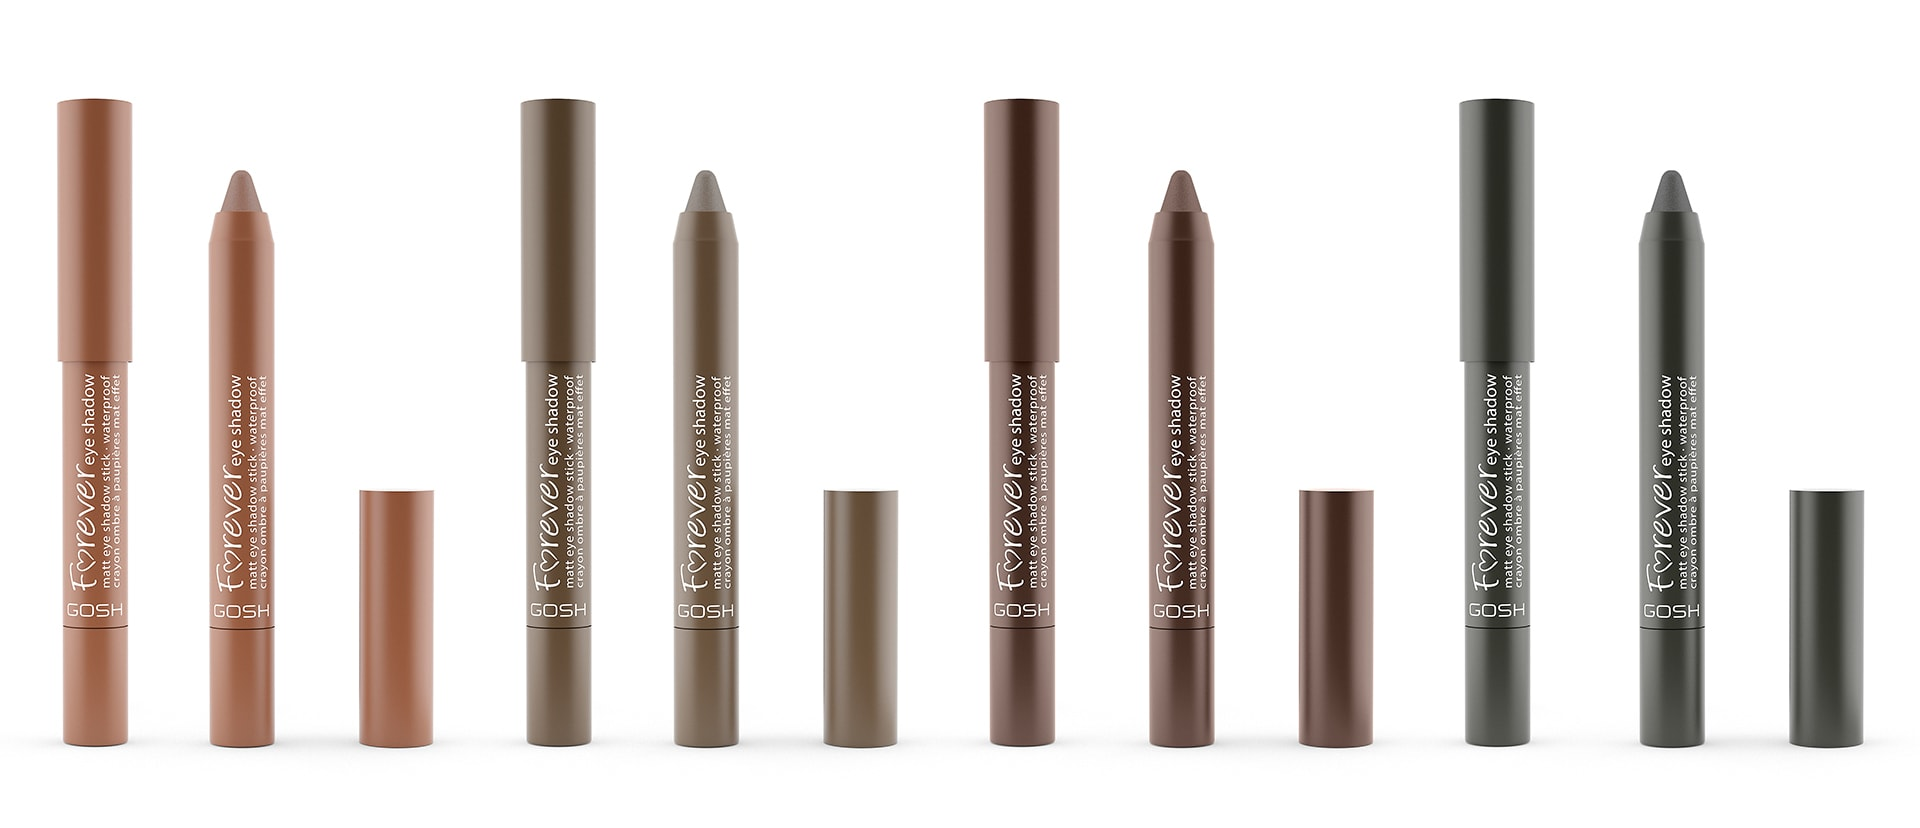 The Color Club - 8 stk Forever Eye Shadow close 1